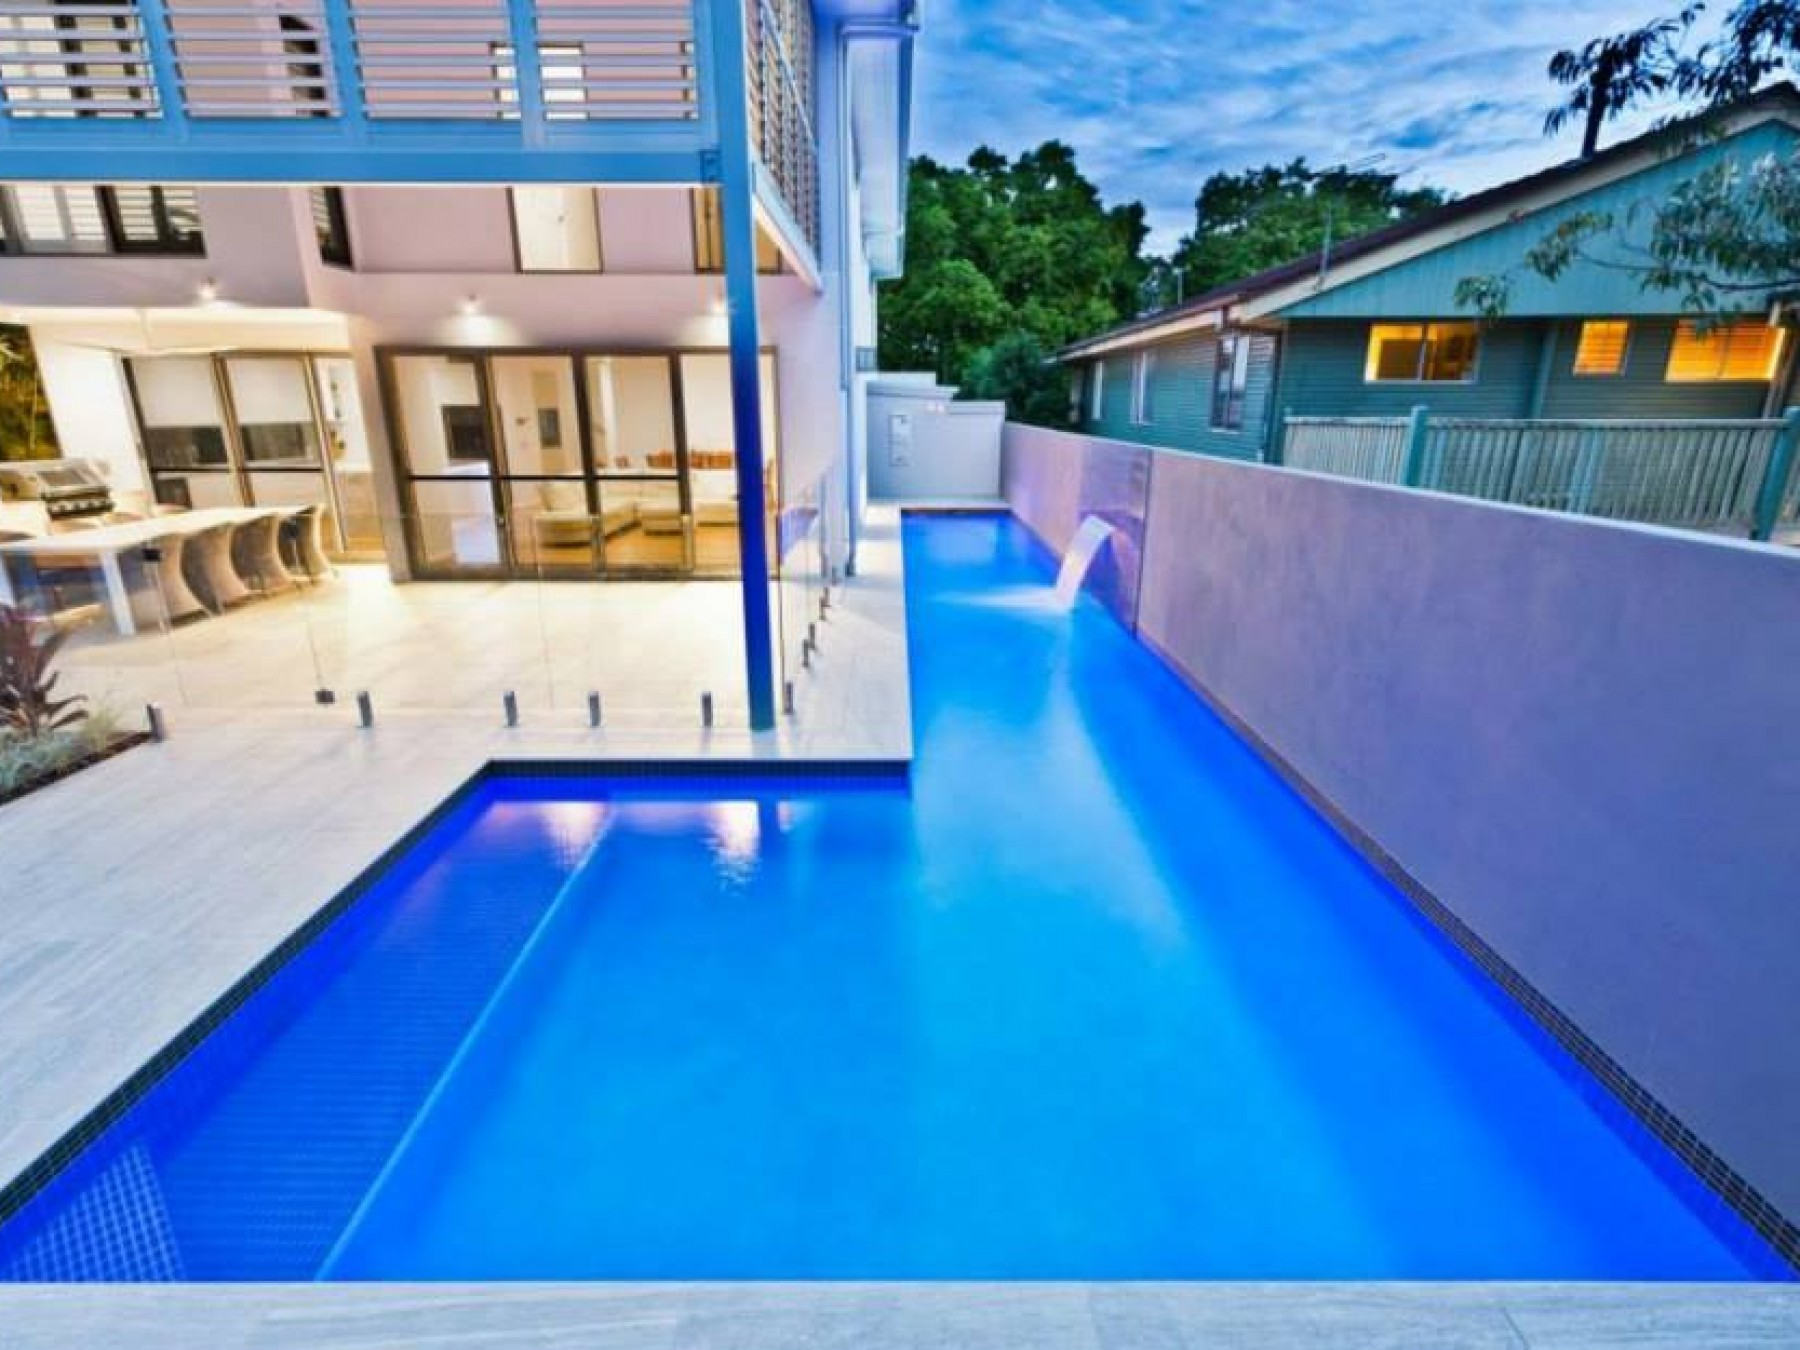 Selling or Leasing a pool in Moorooka